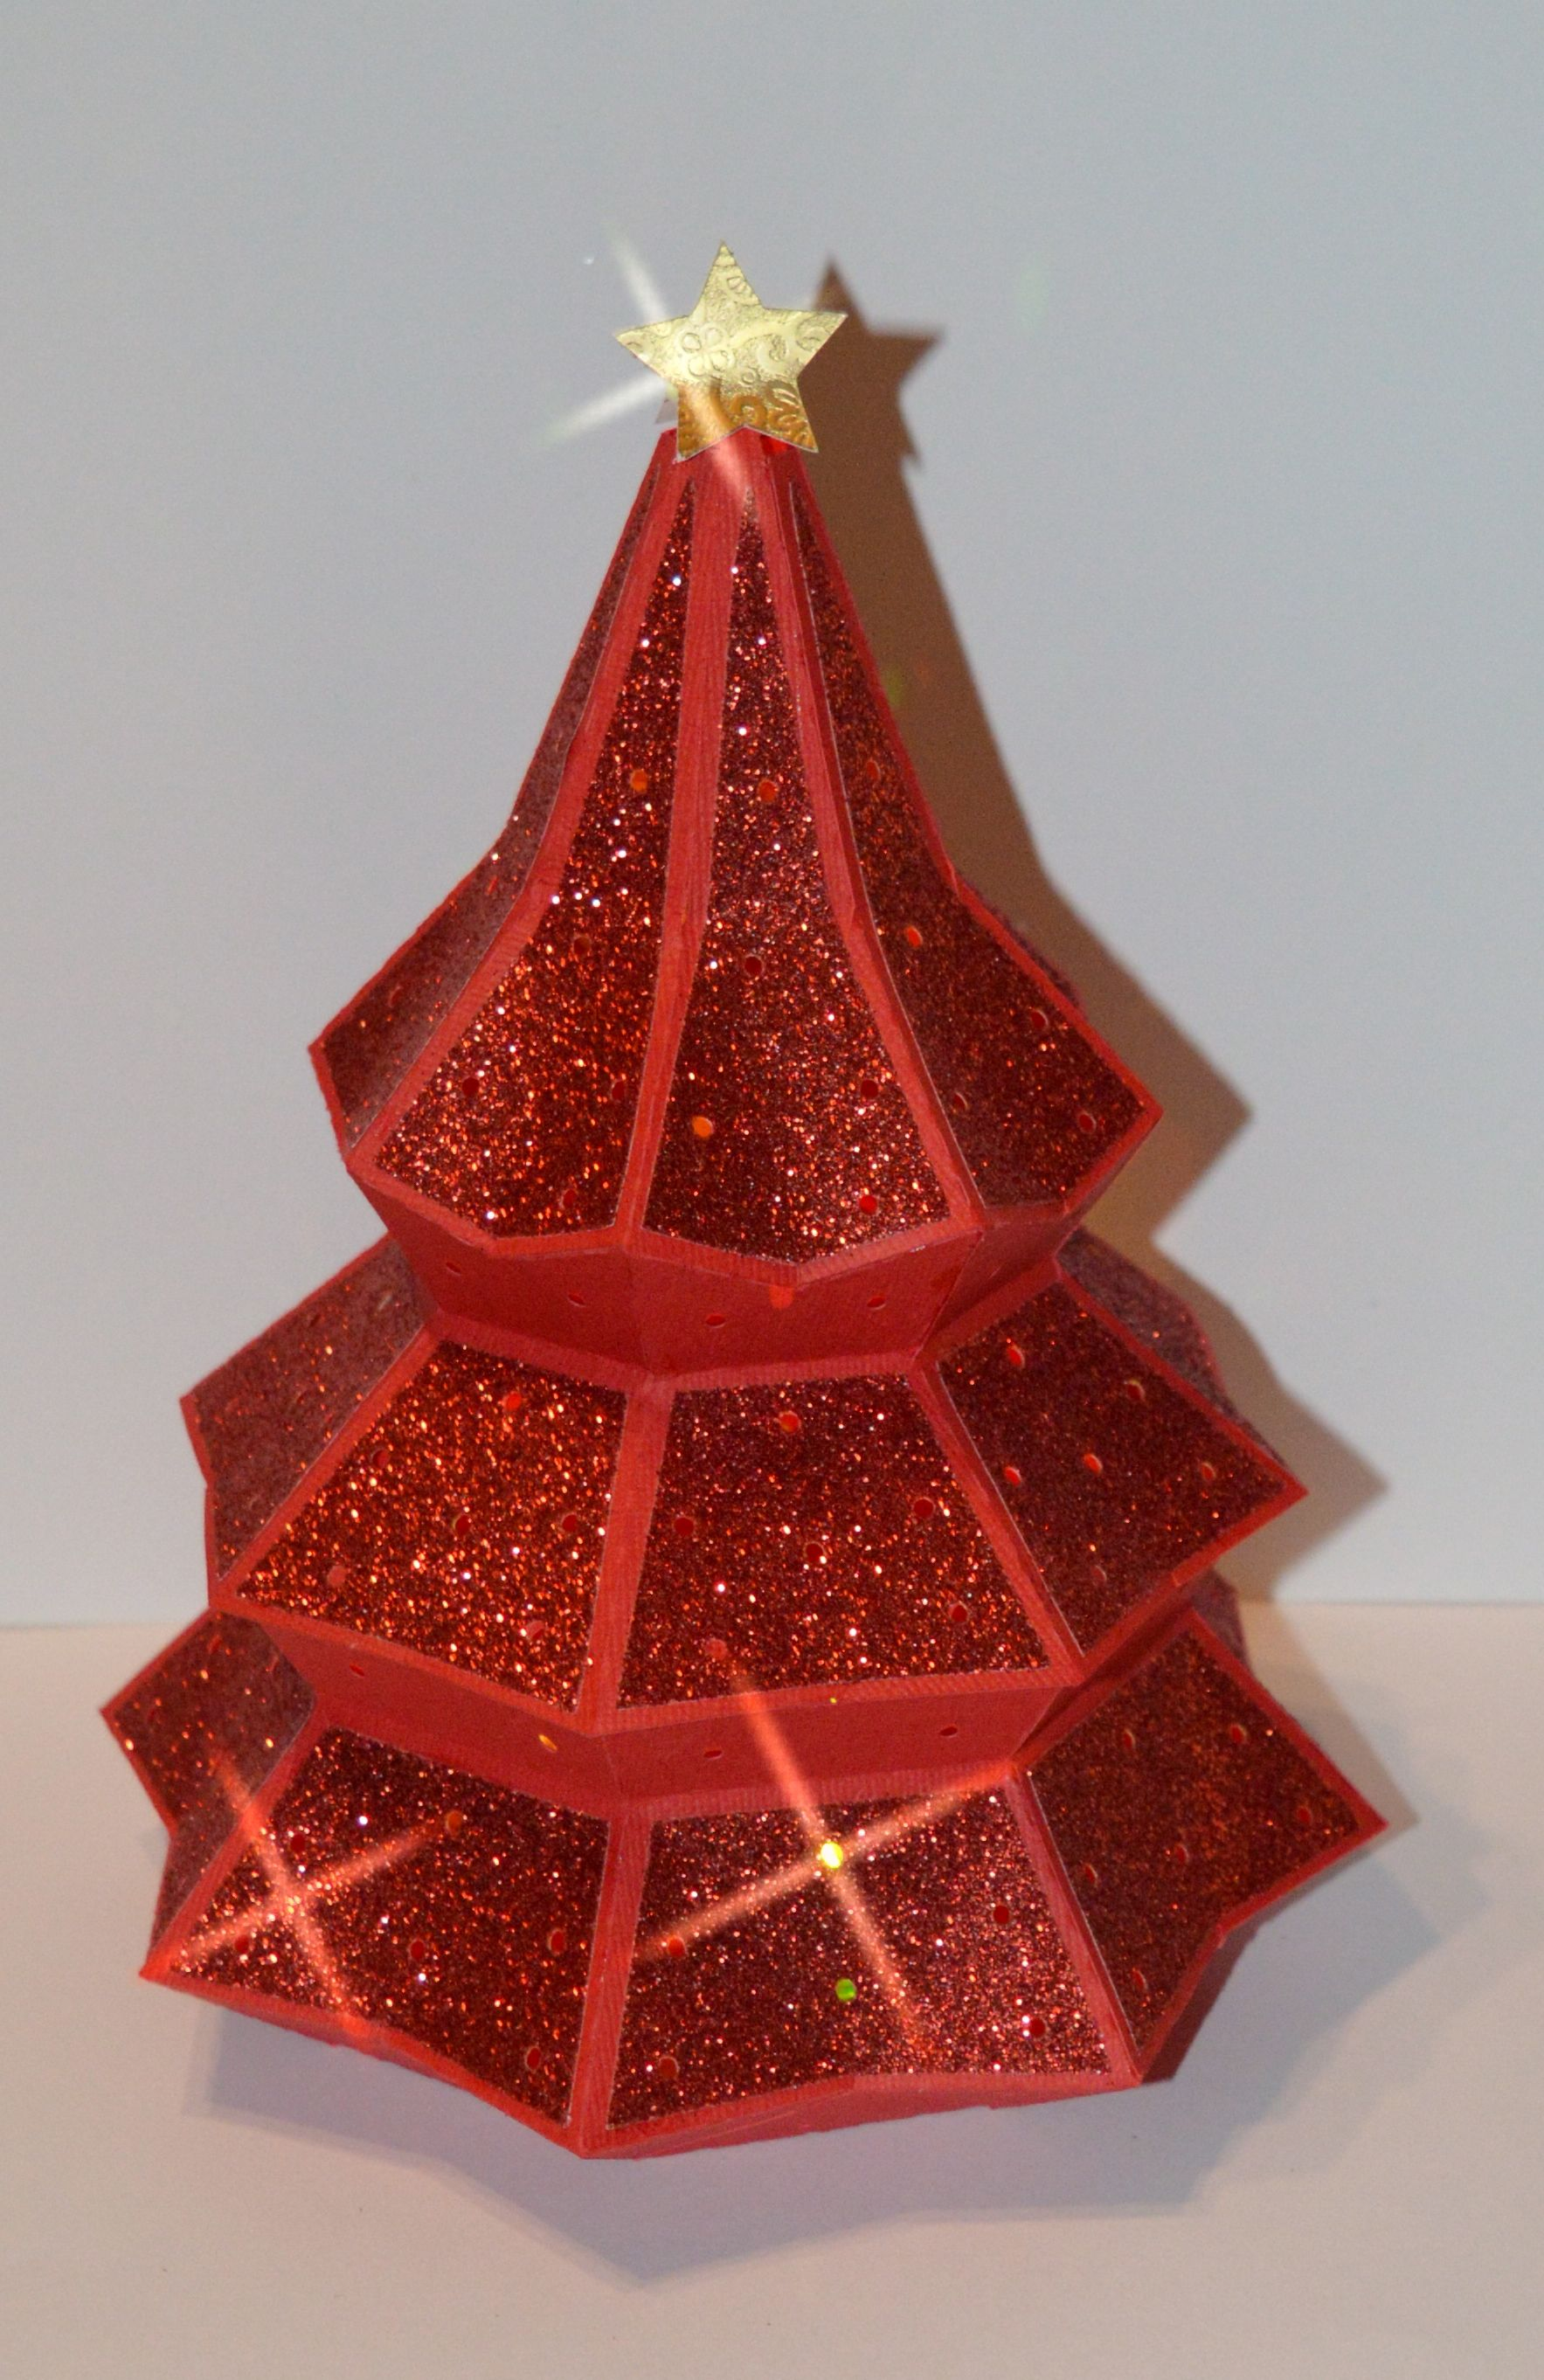 3D Christmas Tree with red glitter paper. Designed by